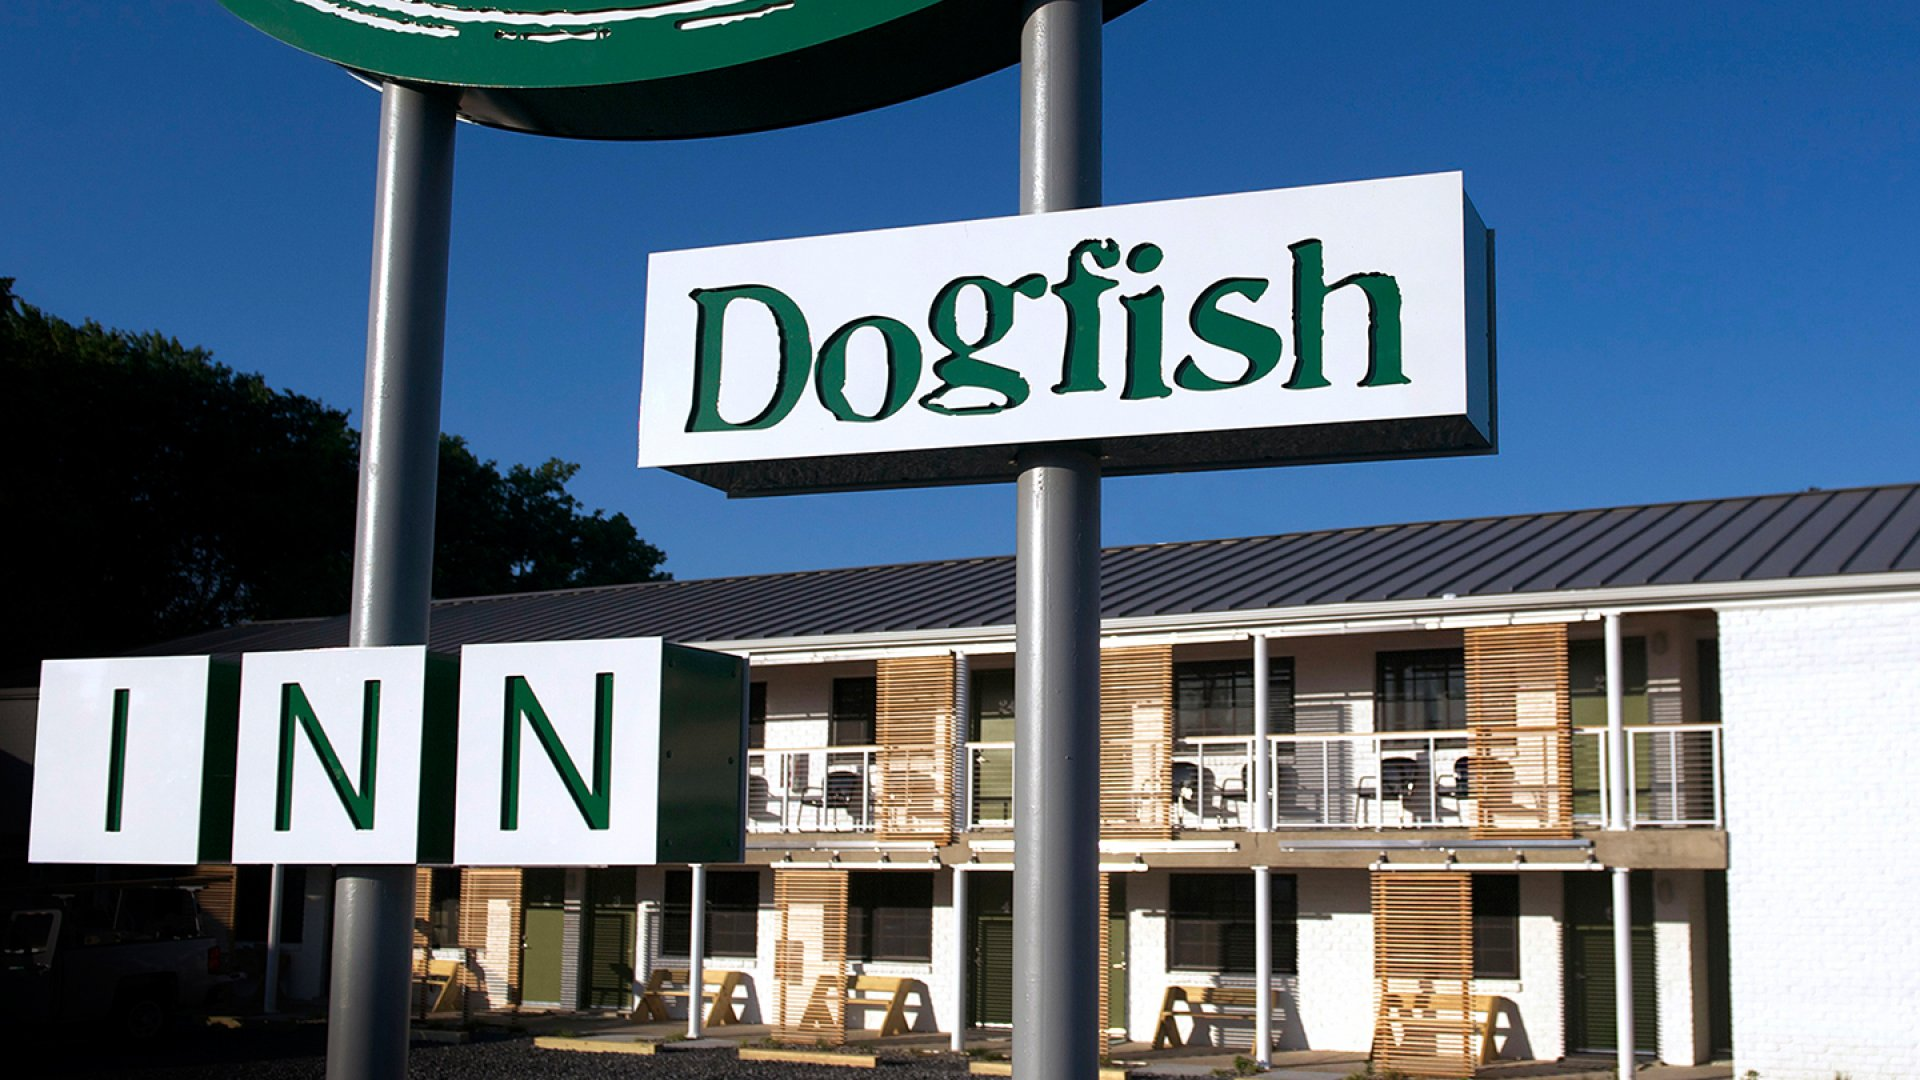 Dogfish Head opened a 16-room hotel in Lewes, Delaware on July 1 to help accommodate visitors to its brewery in nearby Milton, support the local economy, and celebrate coastal Delaware.  <br> <br>